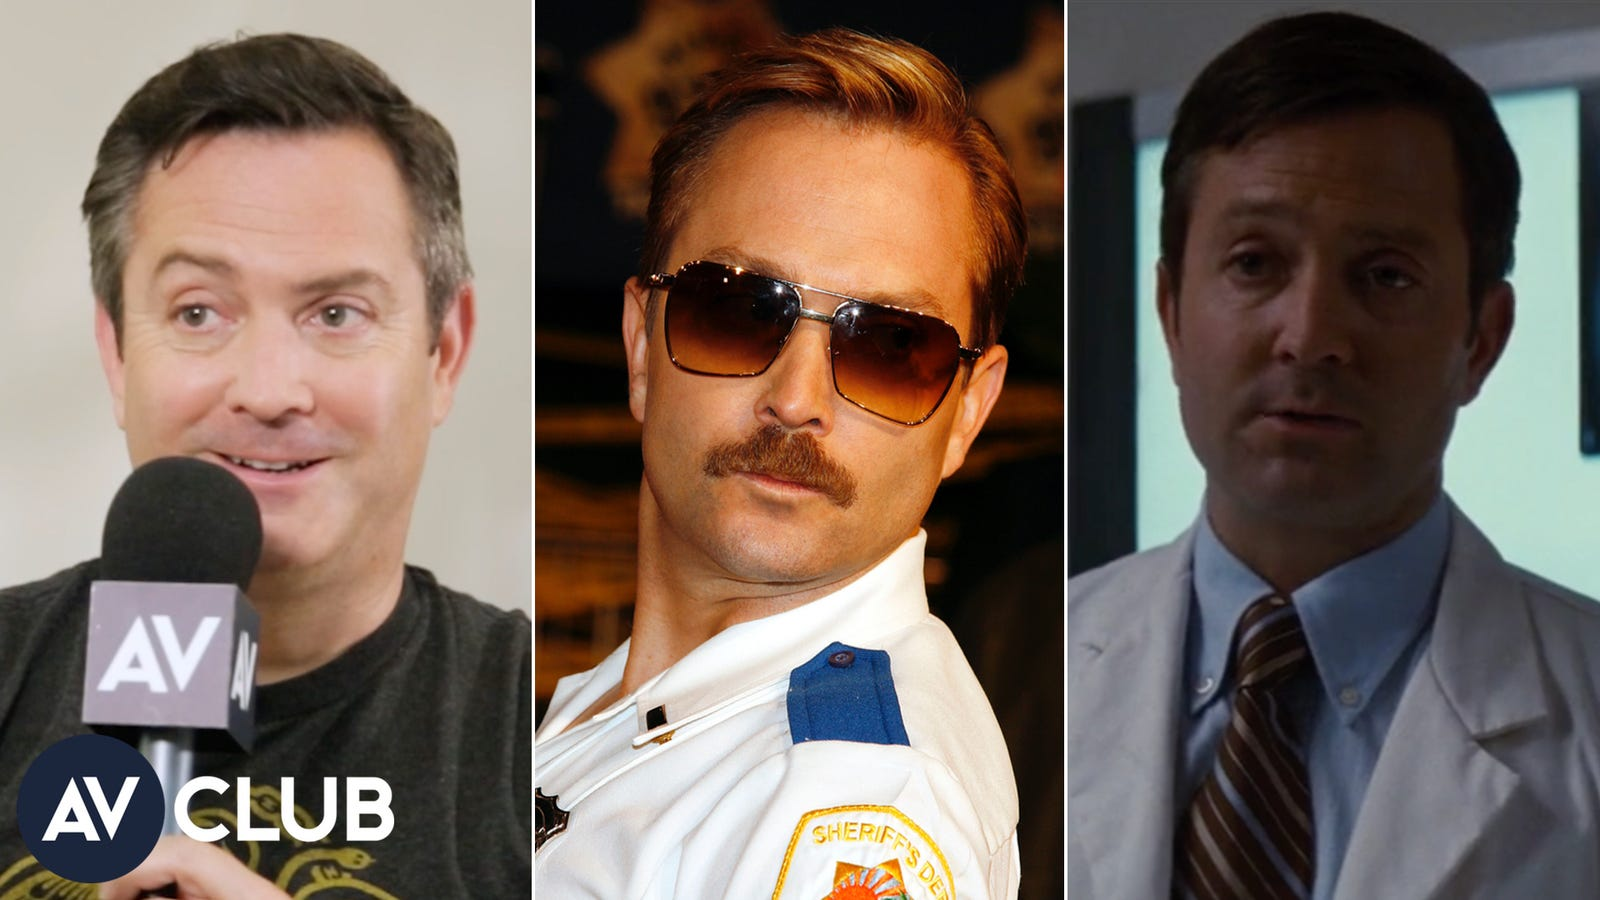 Thomas Lennon on Reno 911, The State, and playing doctors in Christopher Nolan movies